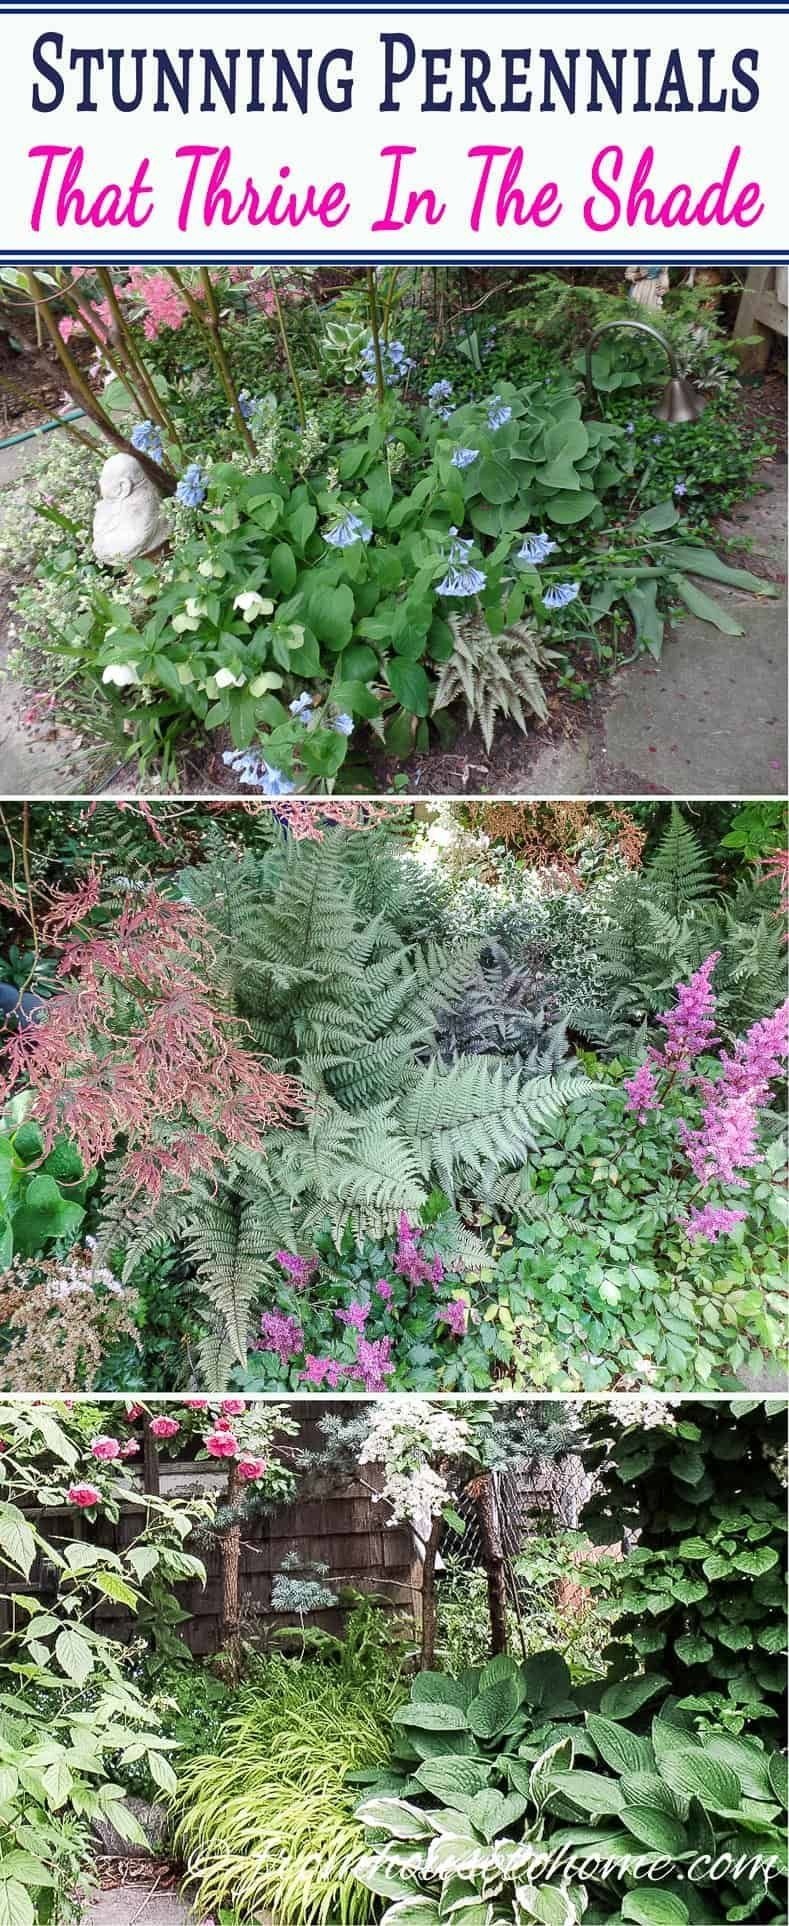 21 Stunning Perennial Ground Cover Plants That Thrive In The Shade Gardening From House To Home Ground Cover Plants Shade Perennials Shade Garden